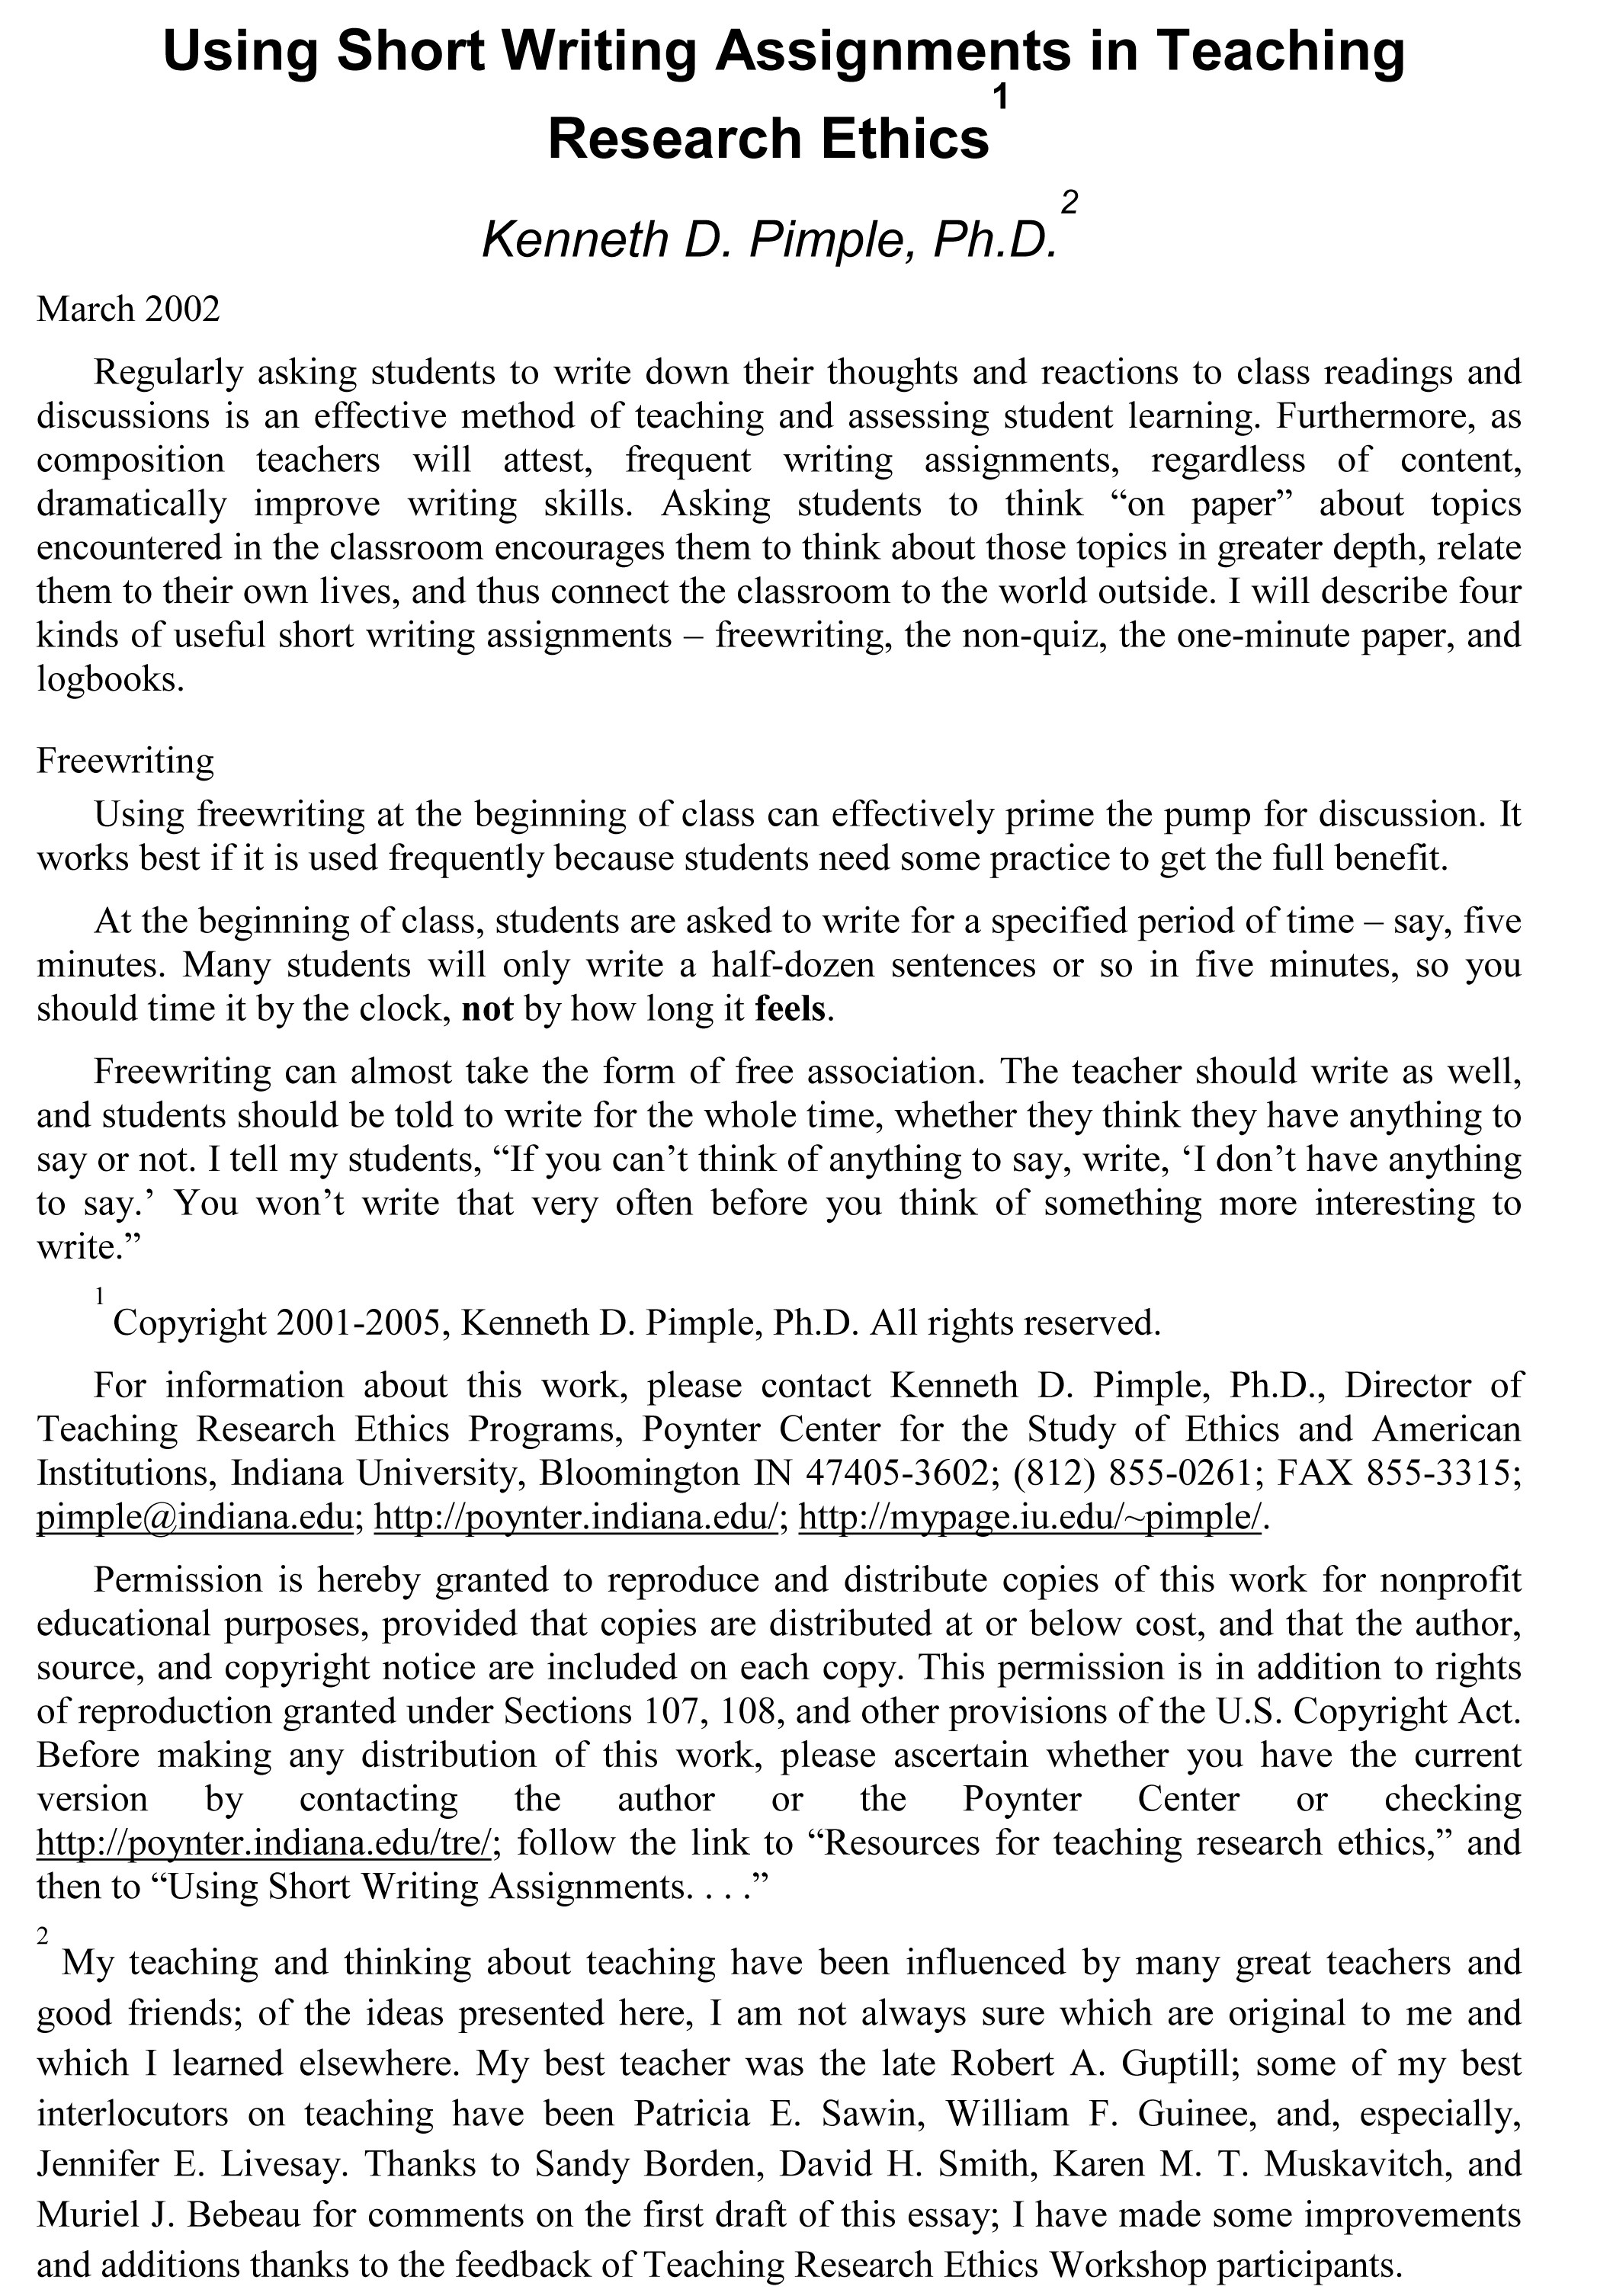 011 Sample Teaching Essay Example Incredible Diversity Examples Med School Medical Purdue Full